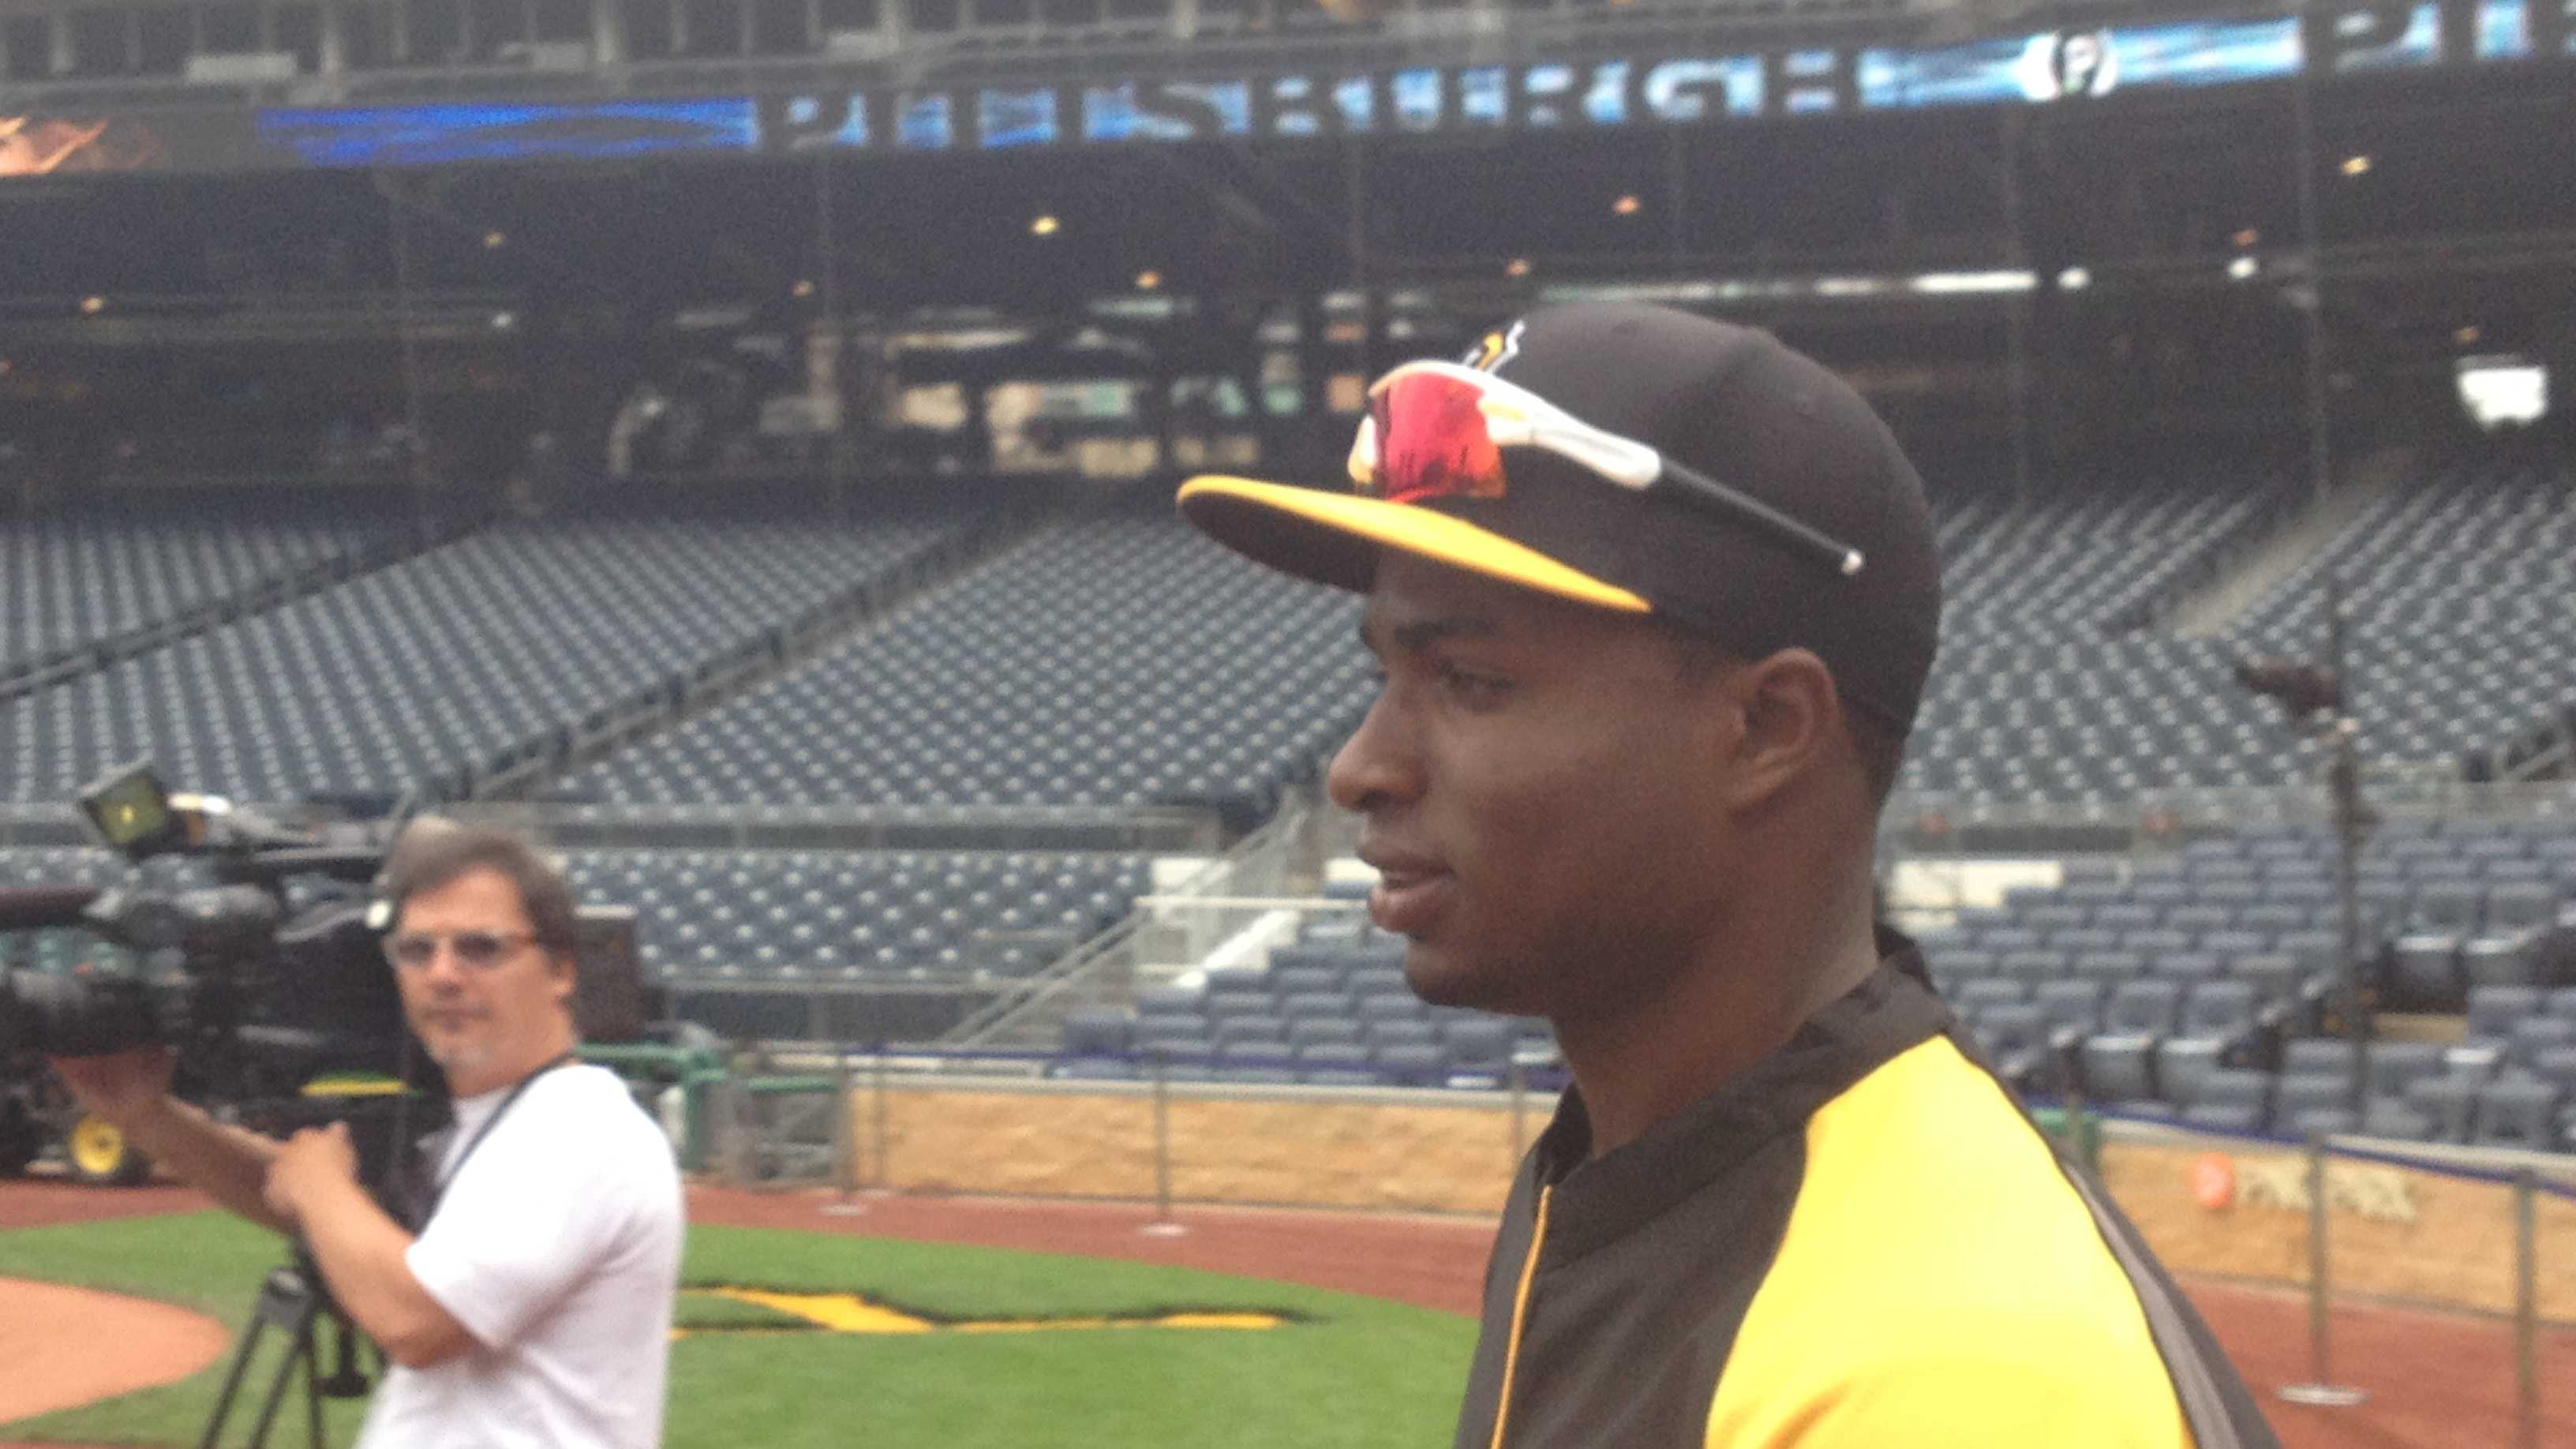 Gregory Polanco at batting practice.